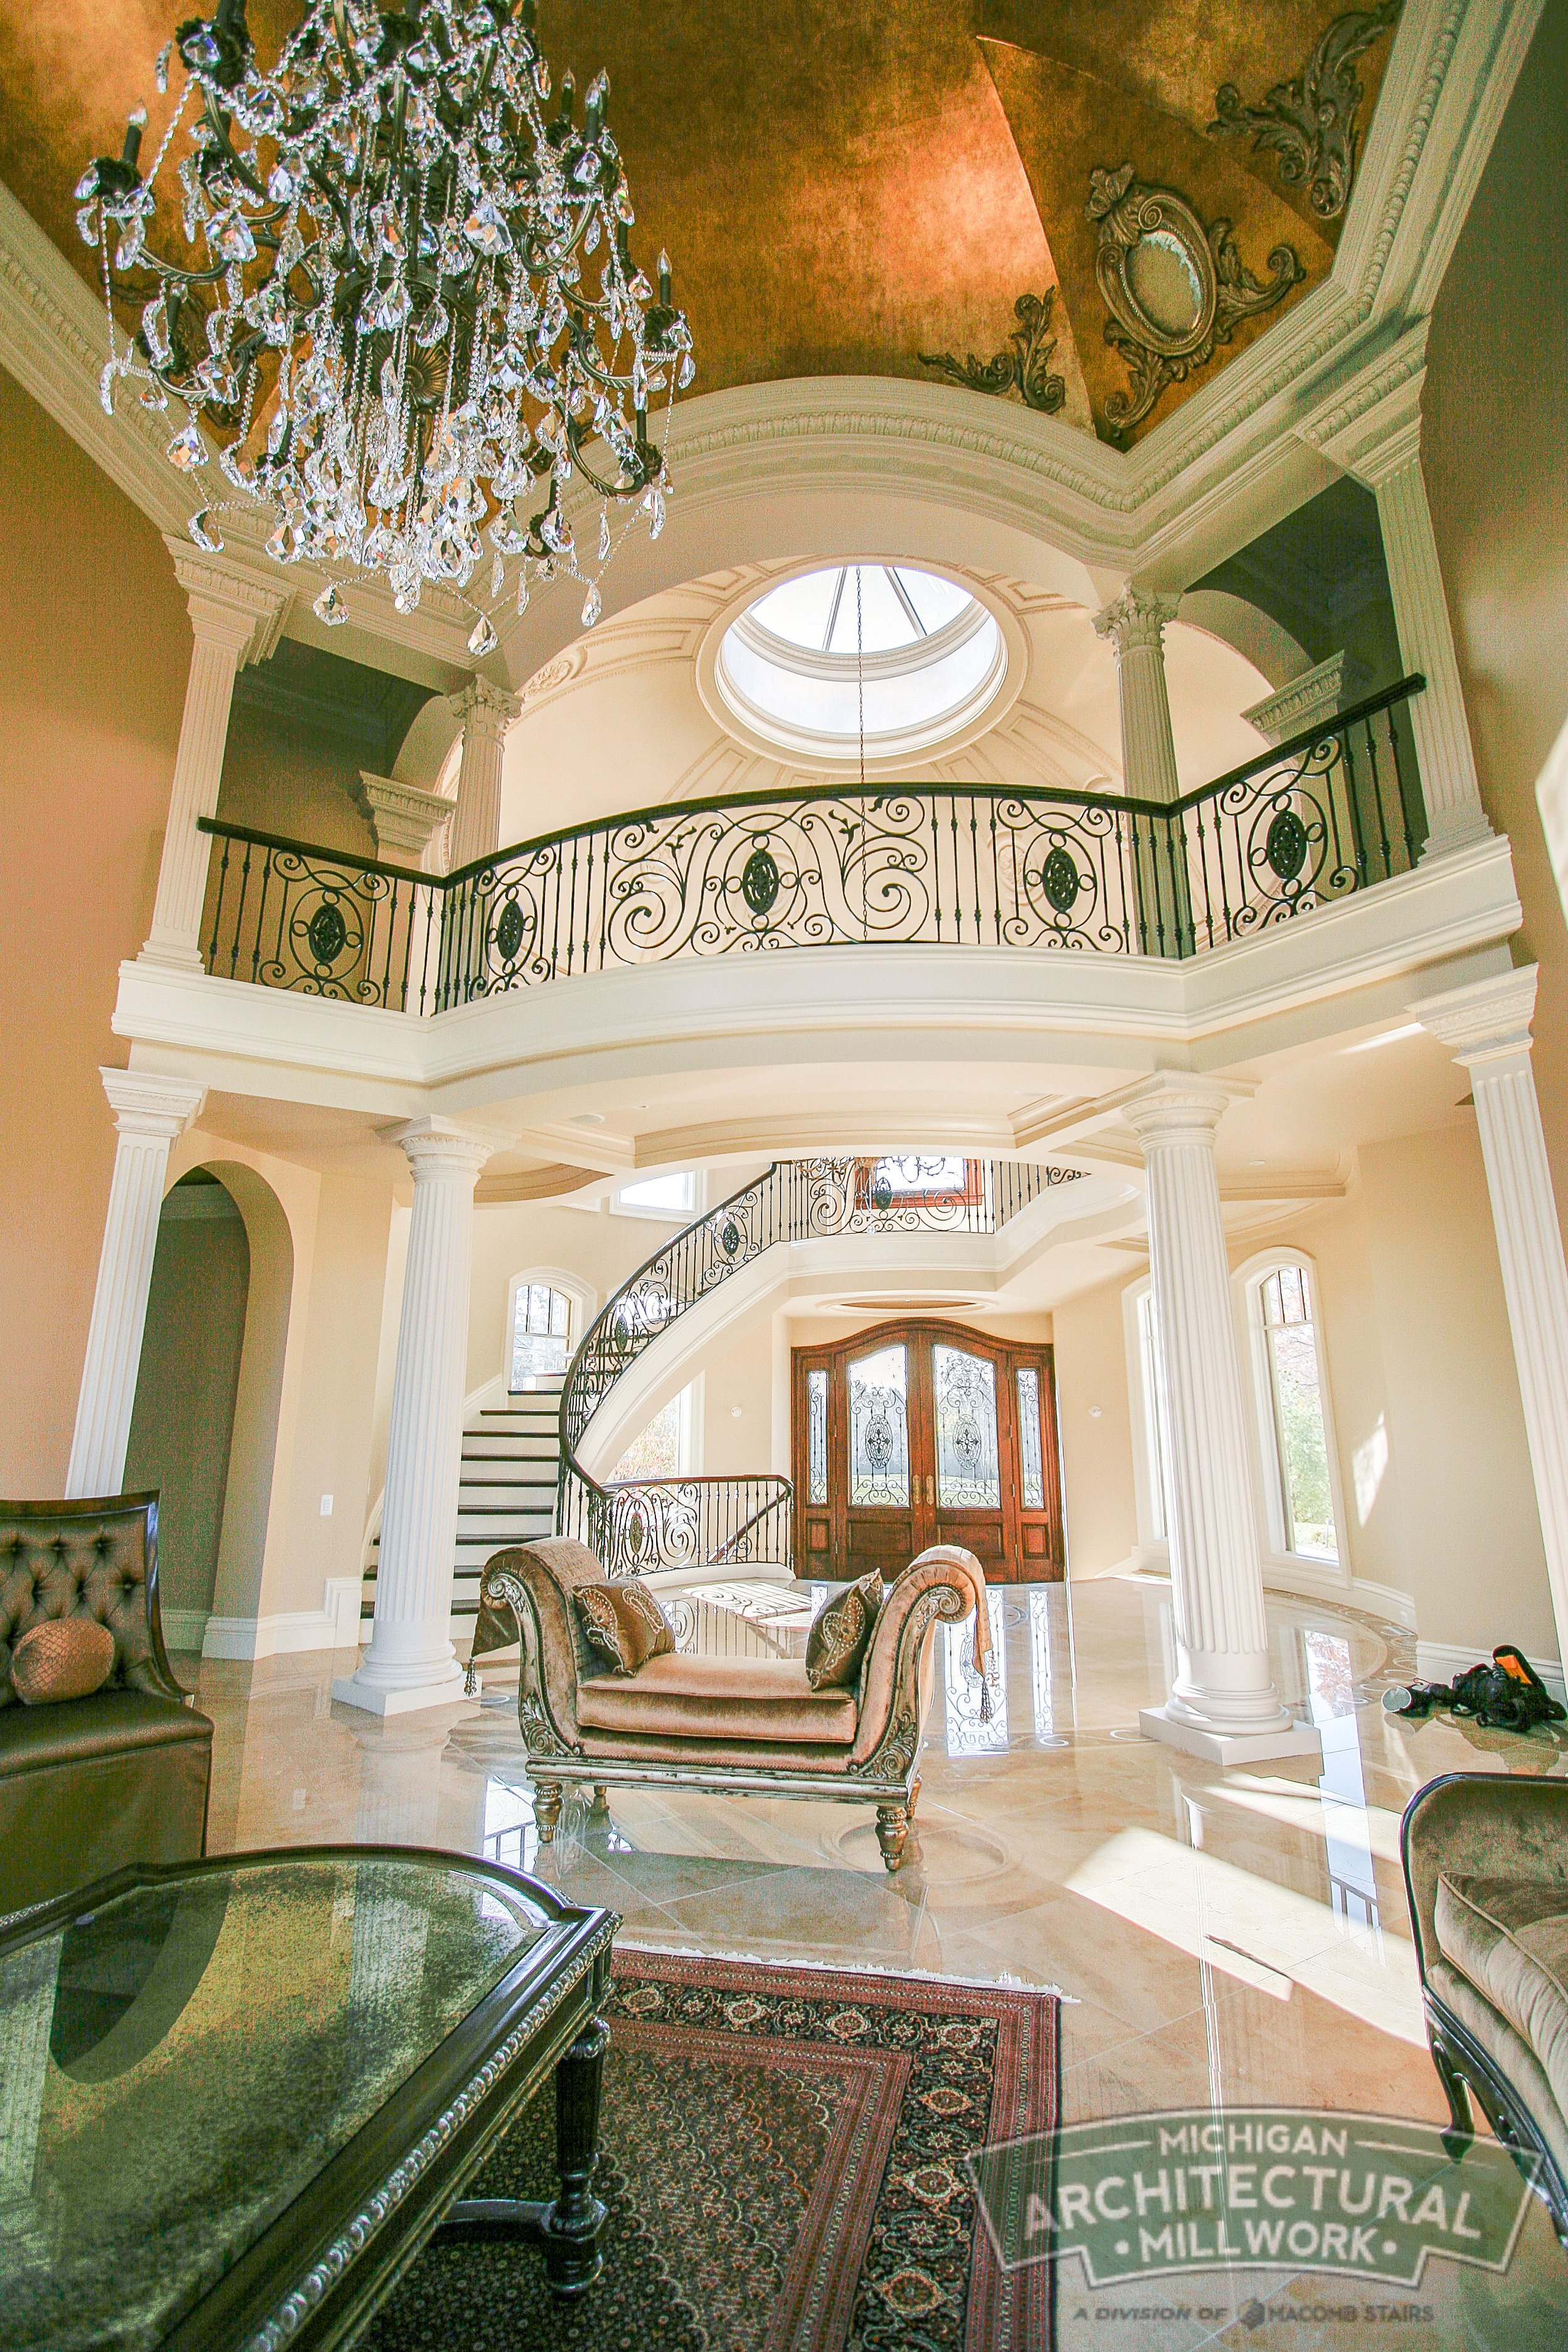 Michigan Architectural Millwork- Moulding and Millwork Photo-132.jpg